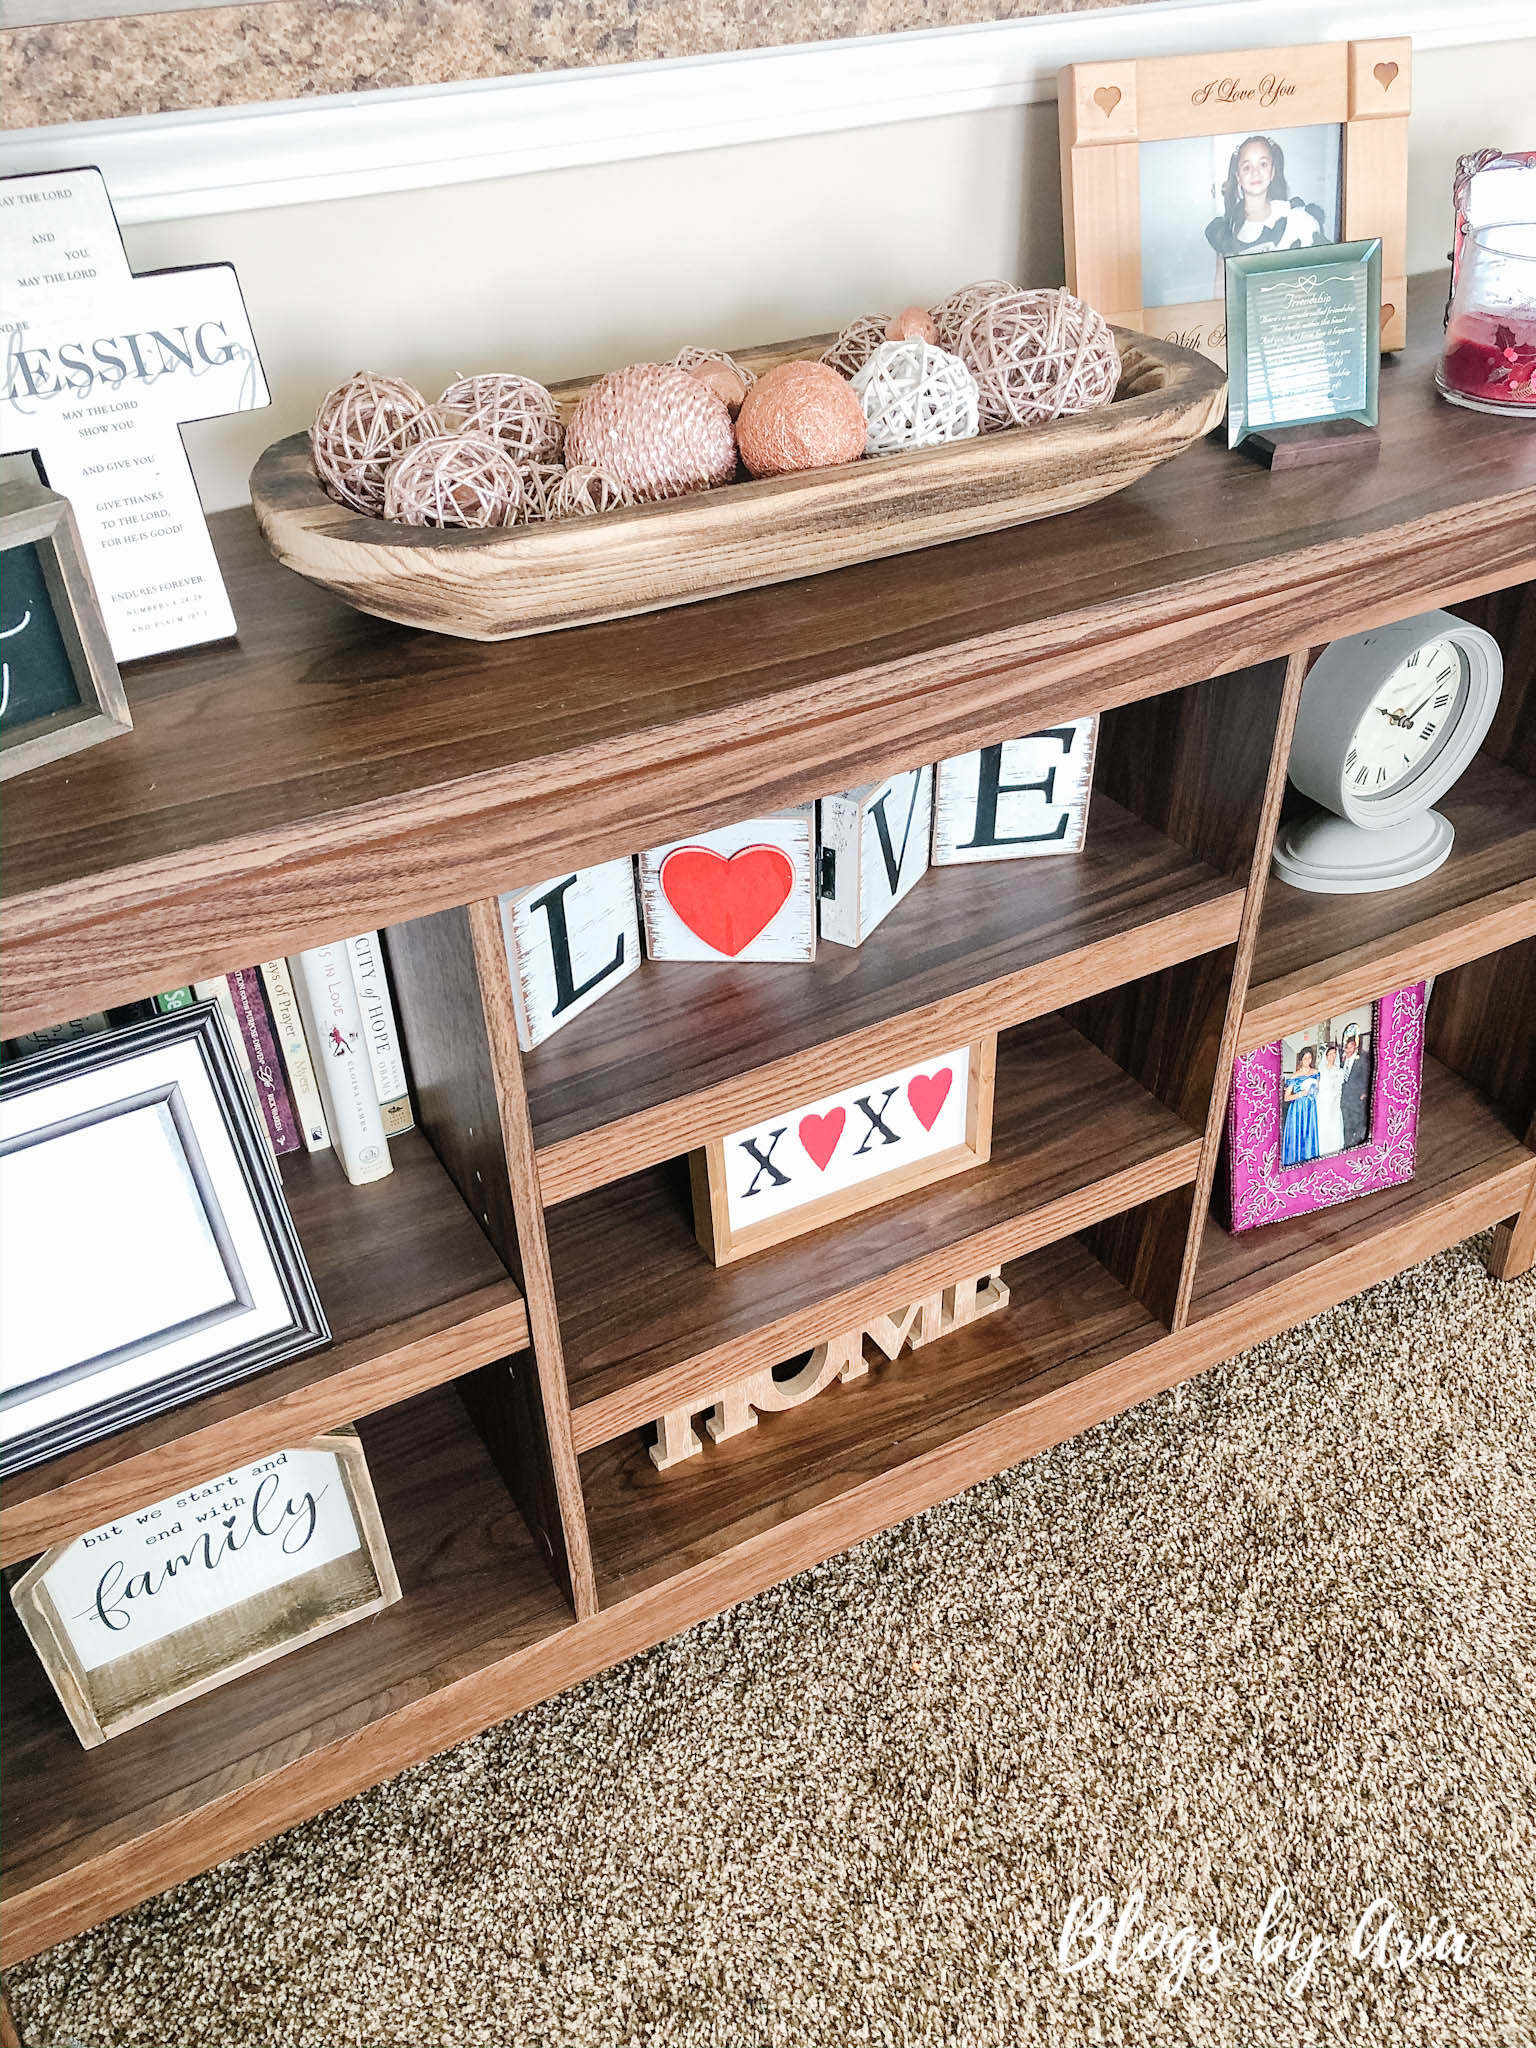 valentines decorated shelves